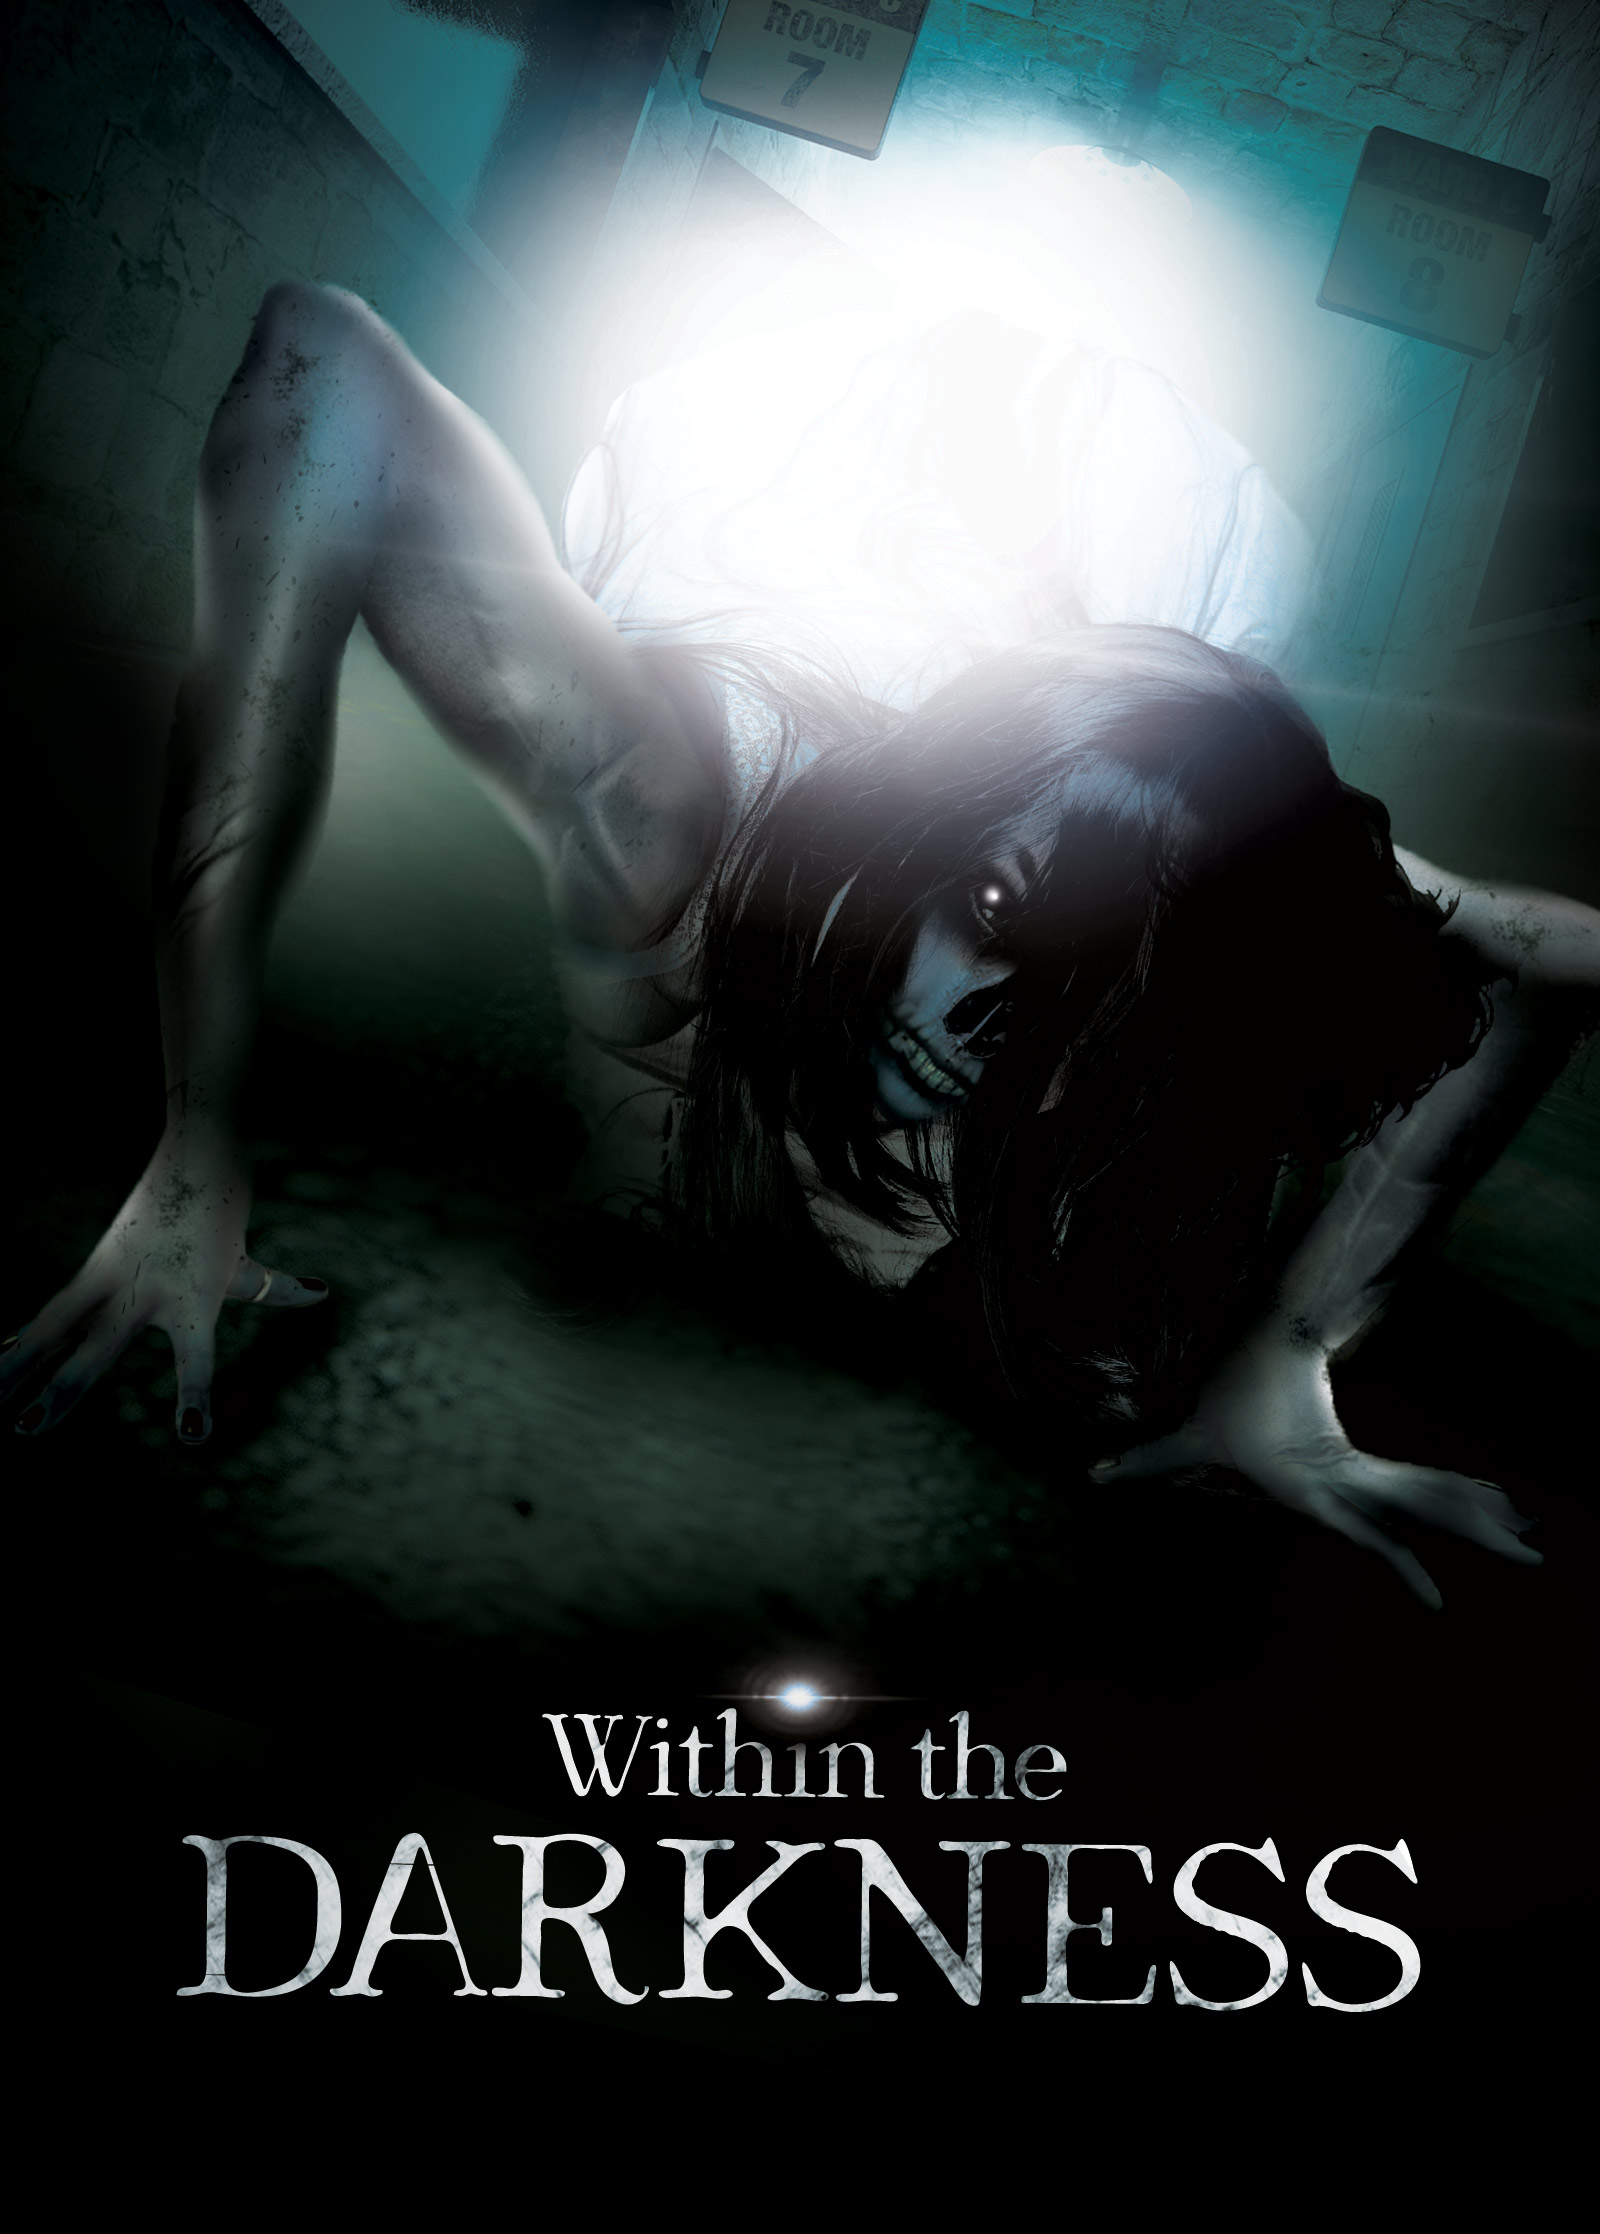 Darkness within the soul